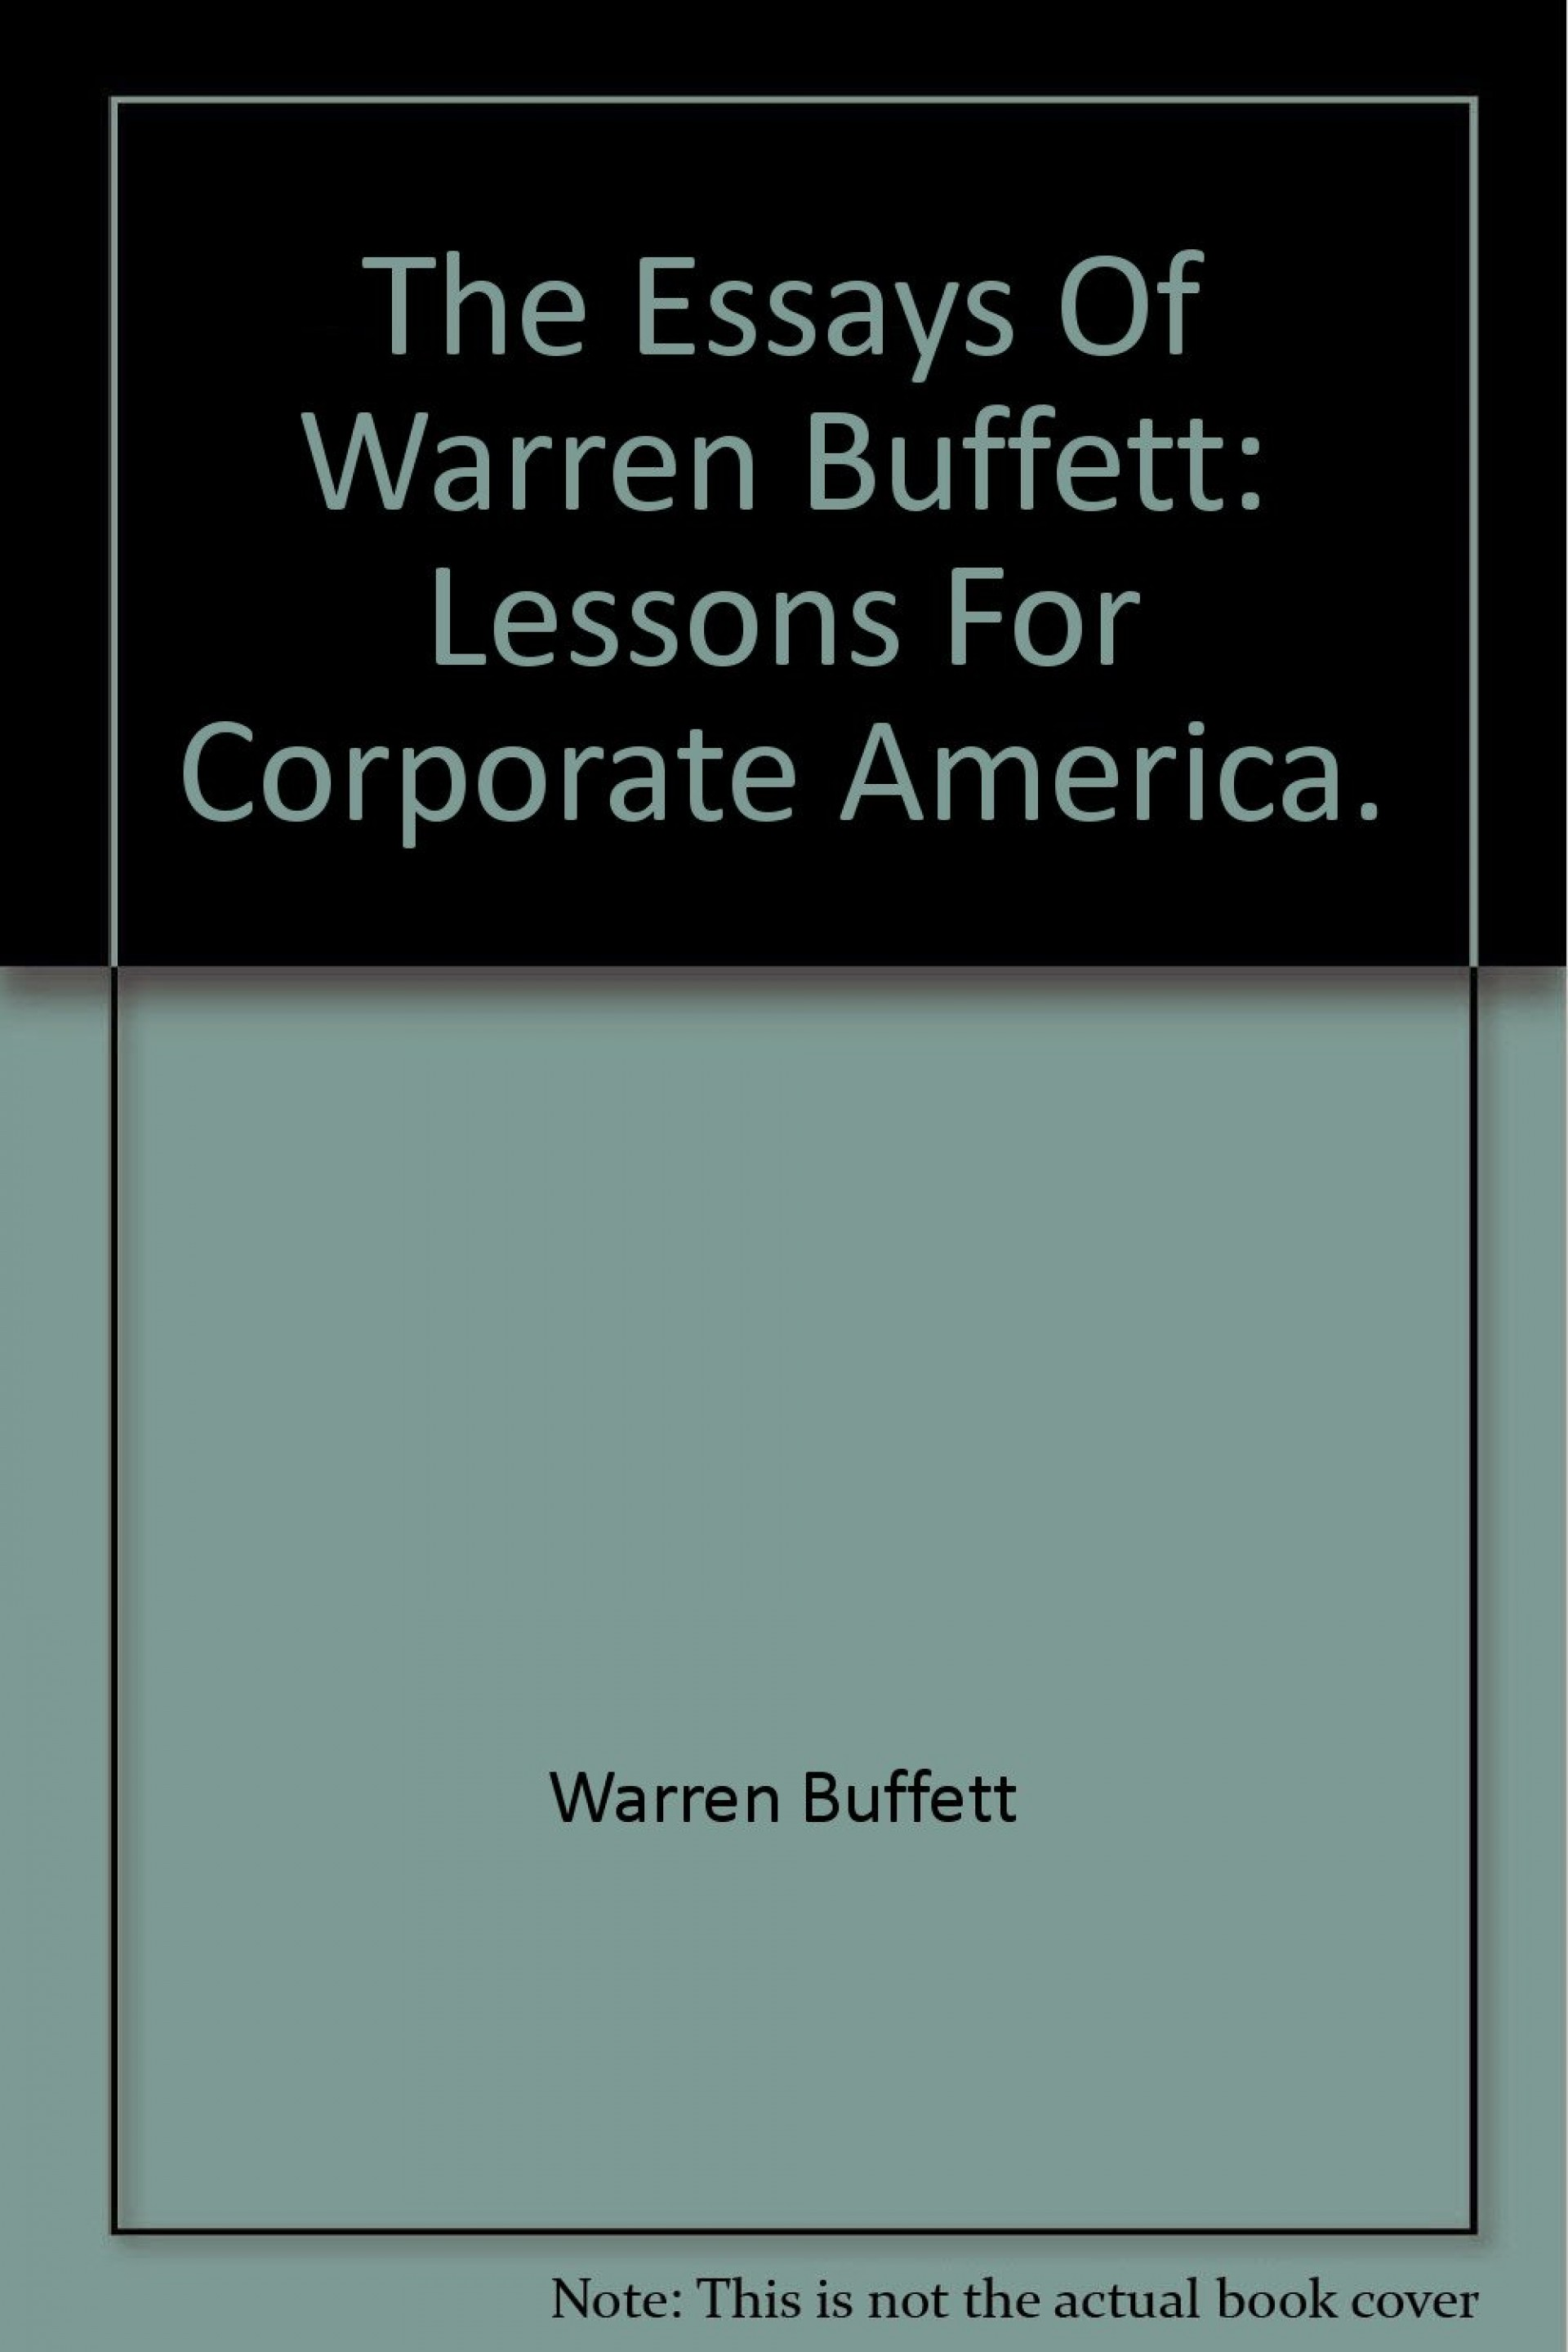 015 The Essays Of Warren Buffett 61wo12biiixl Essay Stirring Pages Audiobook Download Summary 1920